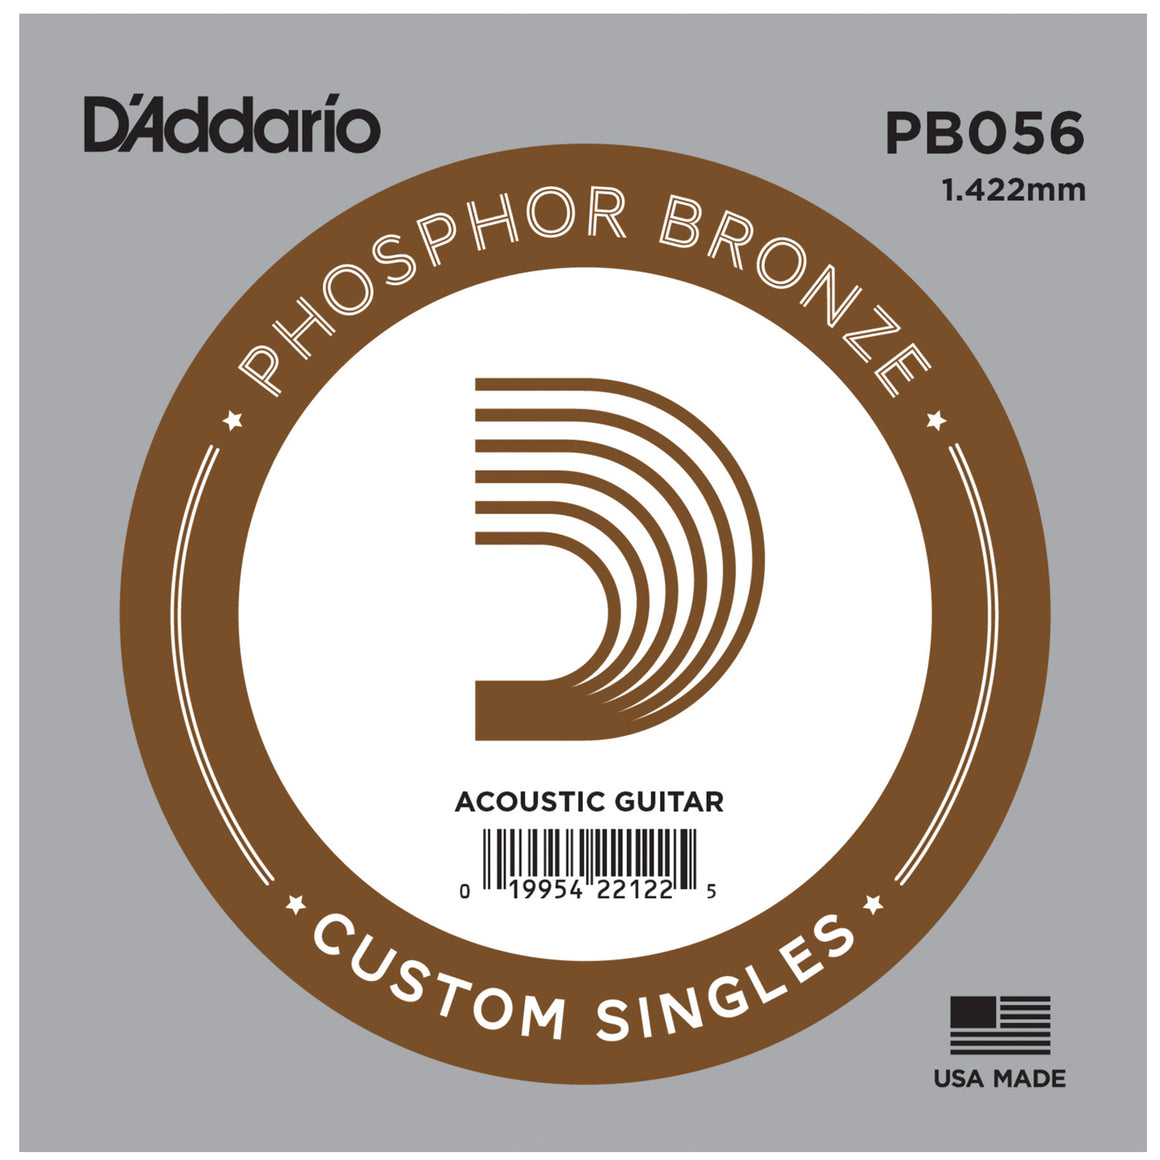 D'Addario PB056 Phosphor Bronze Single Acoustic Guitar String .056